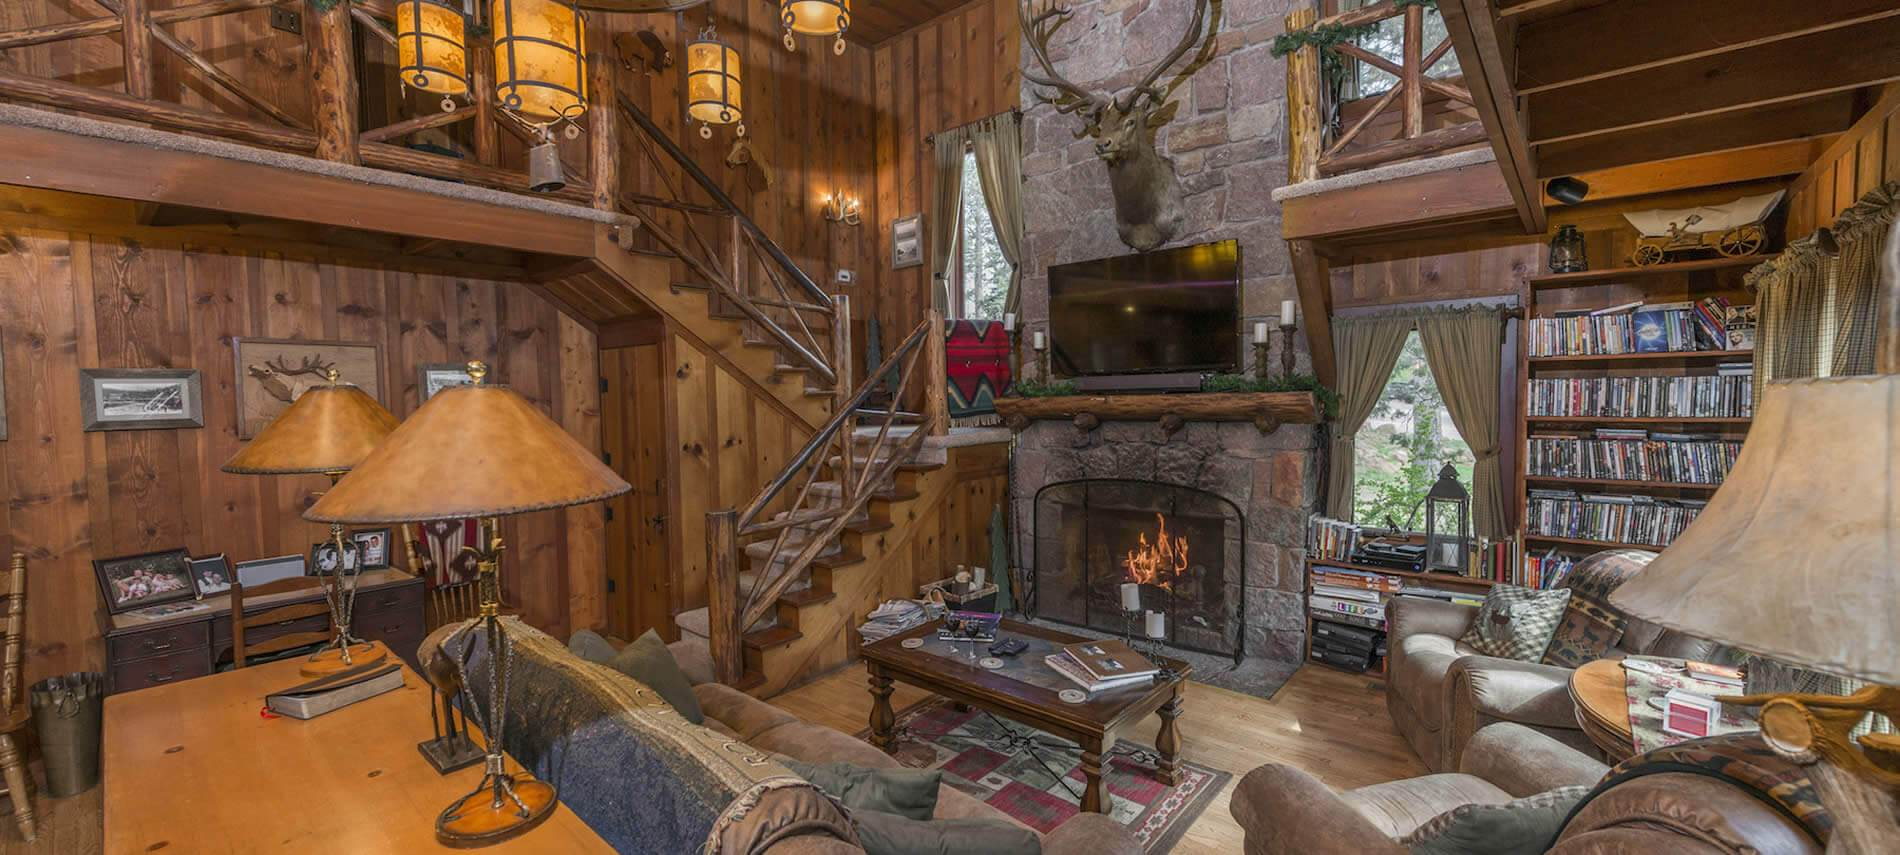 Two story wood paneled living room filled with book lined shelves, upholstered furniture and a roaring fire in stone fireplace.